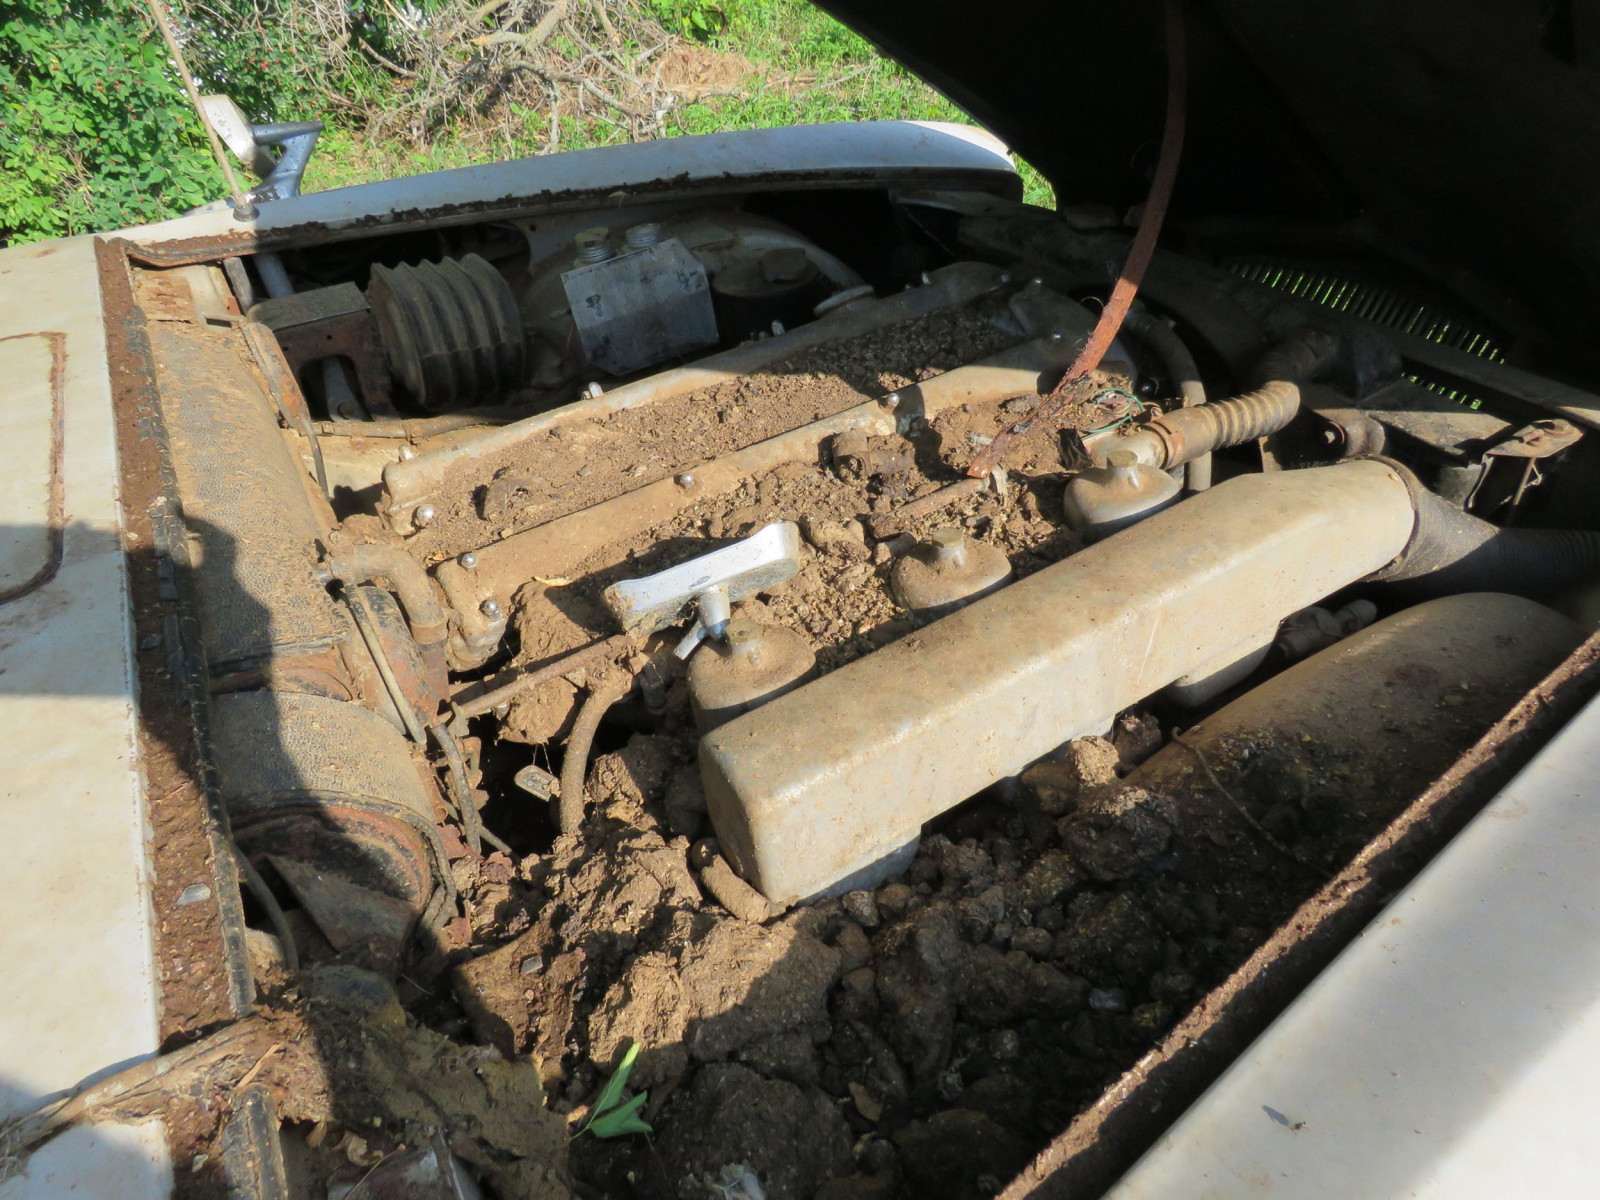 1965 Jaguar Mark X 4dr Sedan Project - Image 6